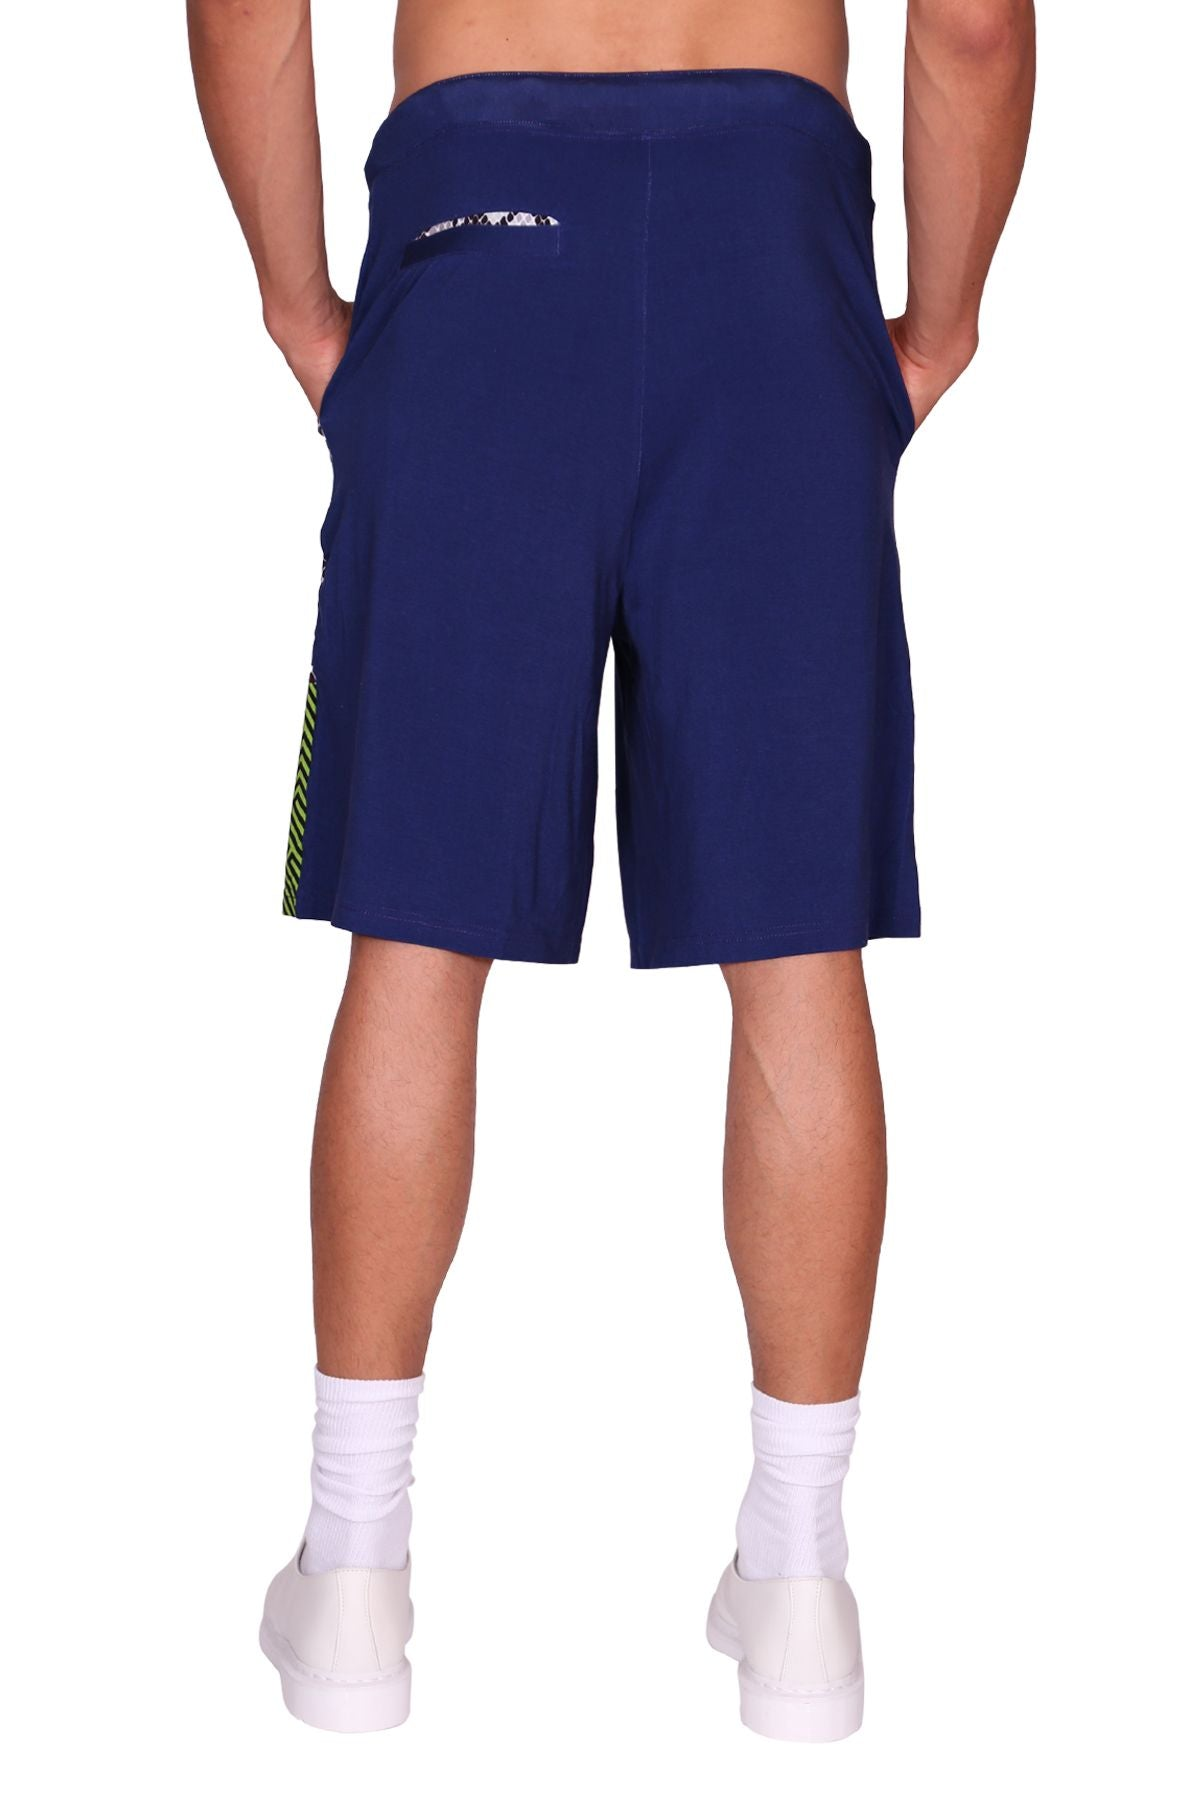 Blurple Layered Short